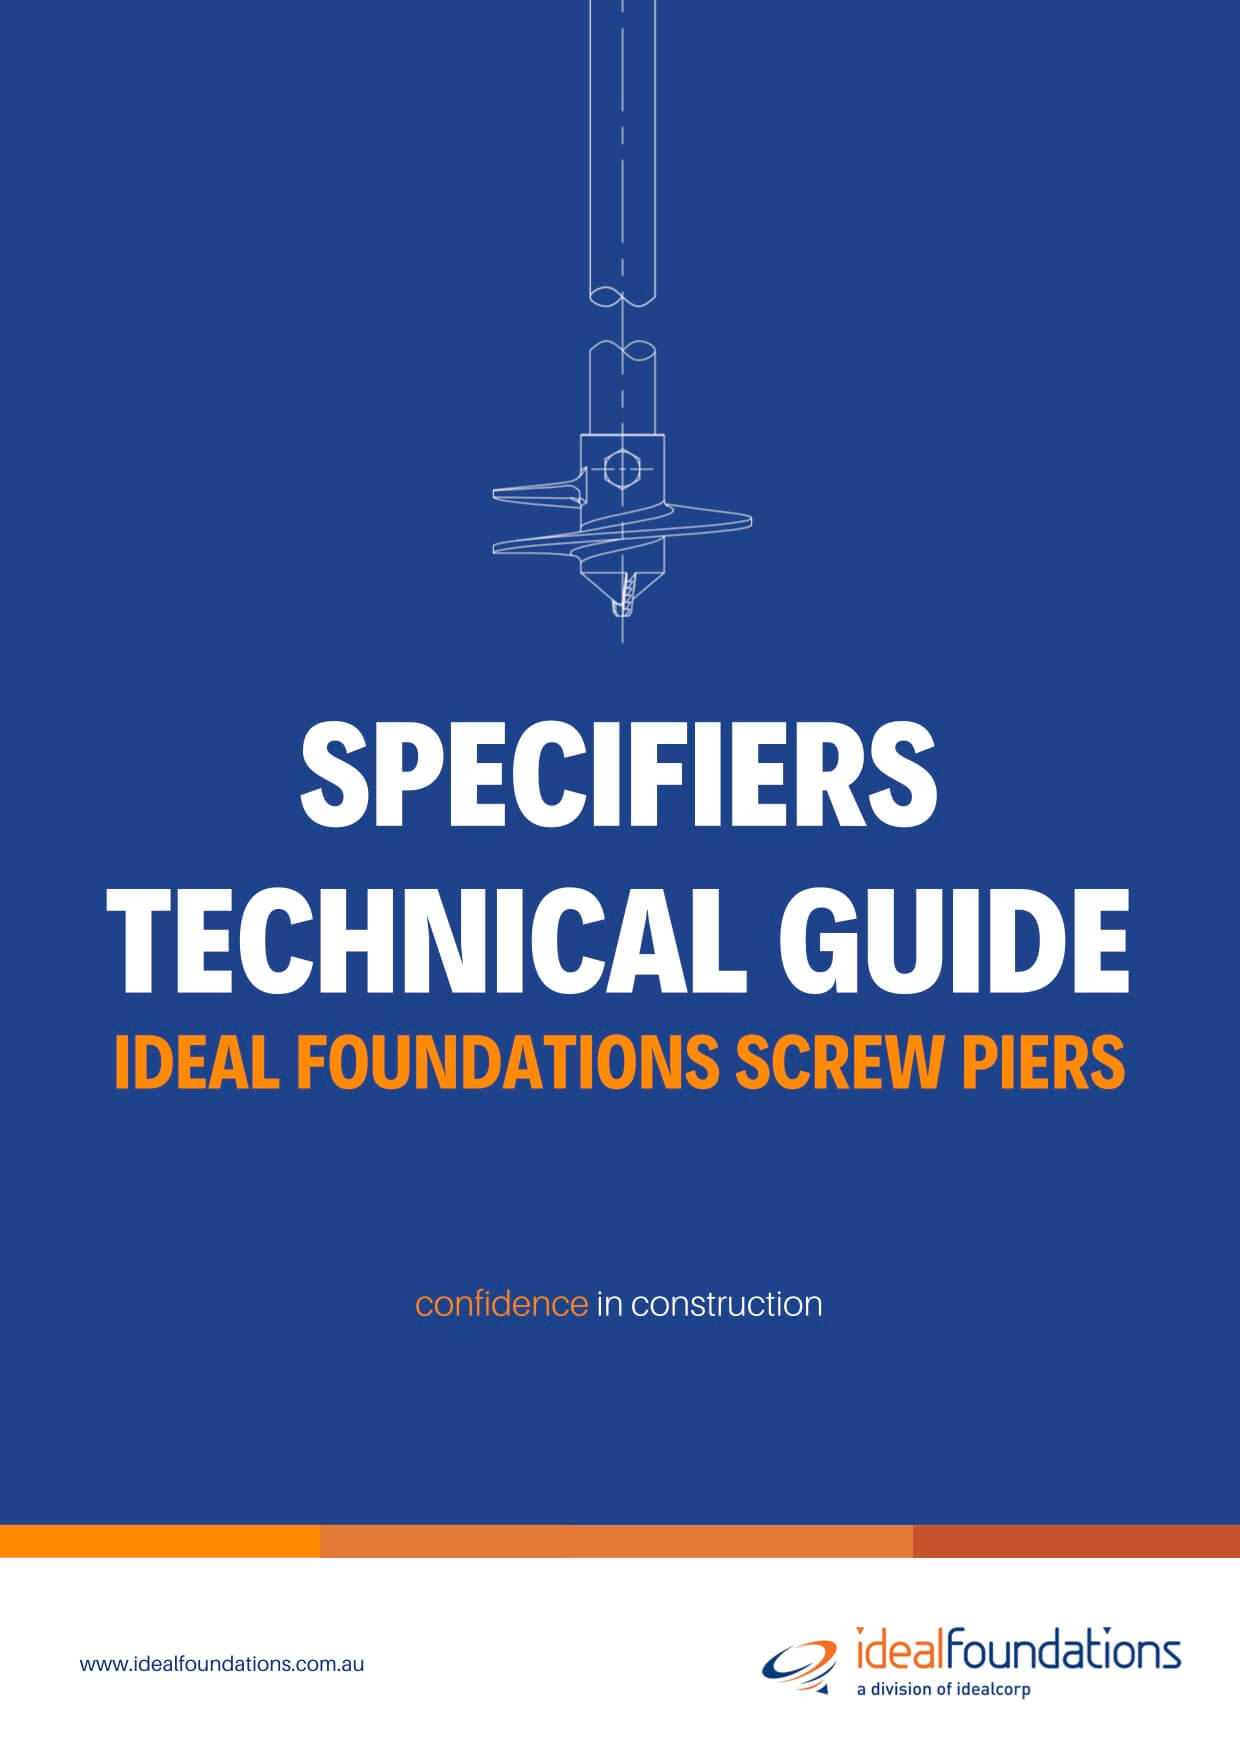 Ideal Foundations Screw pier technical guide for specifiers